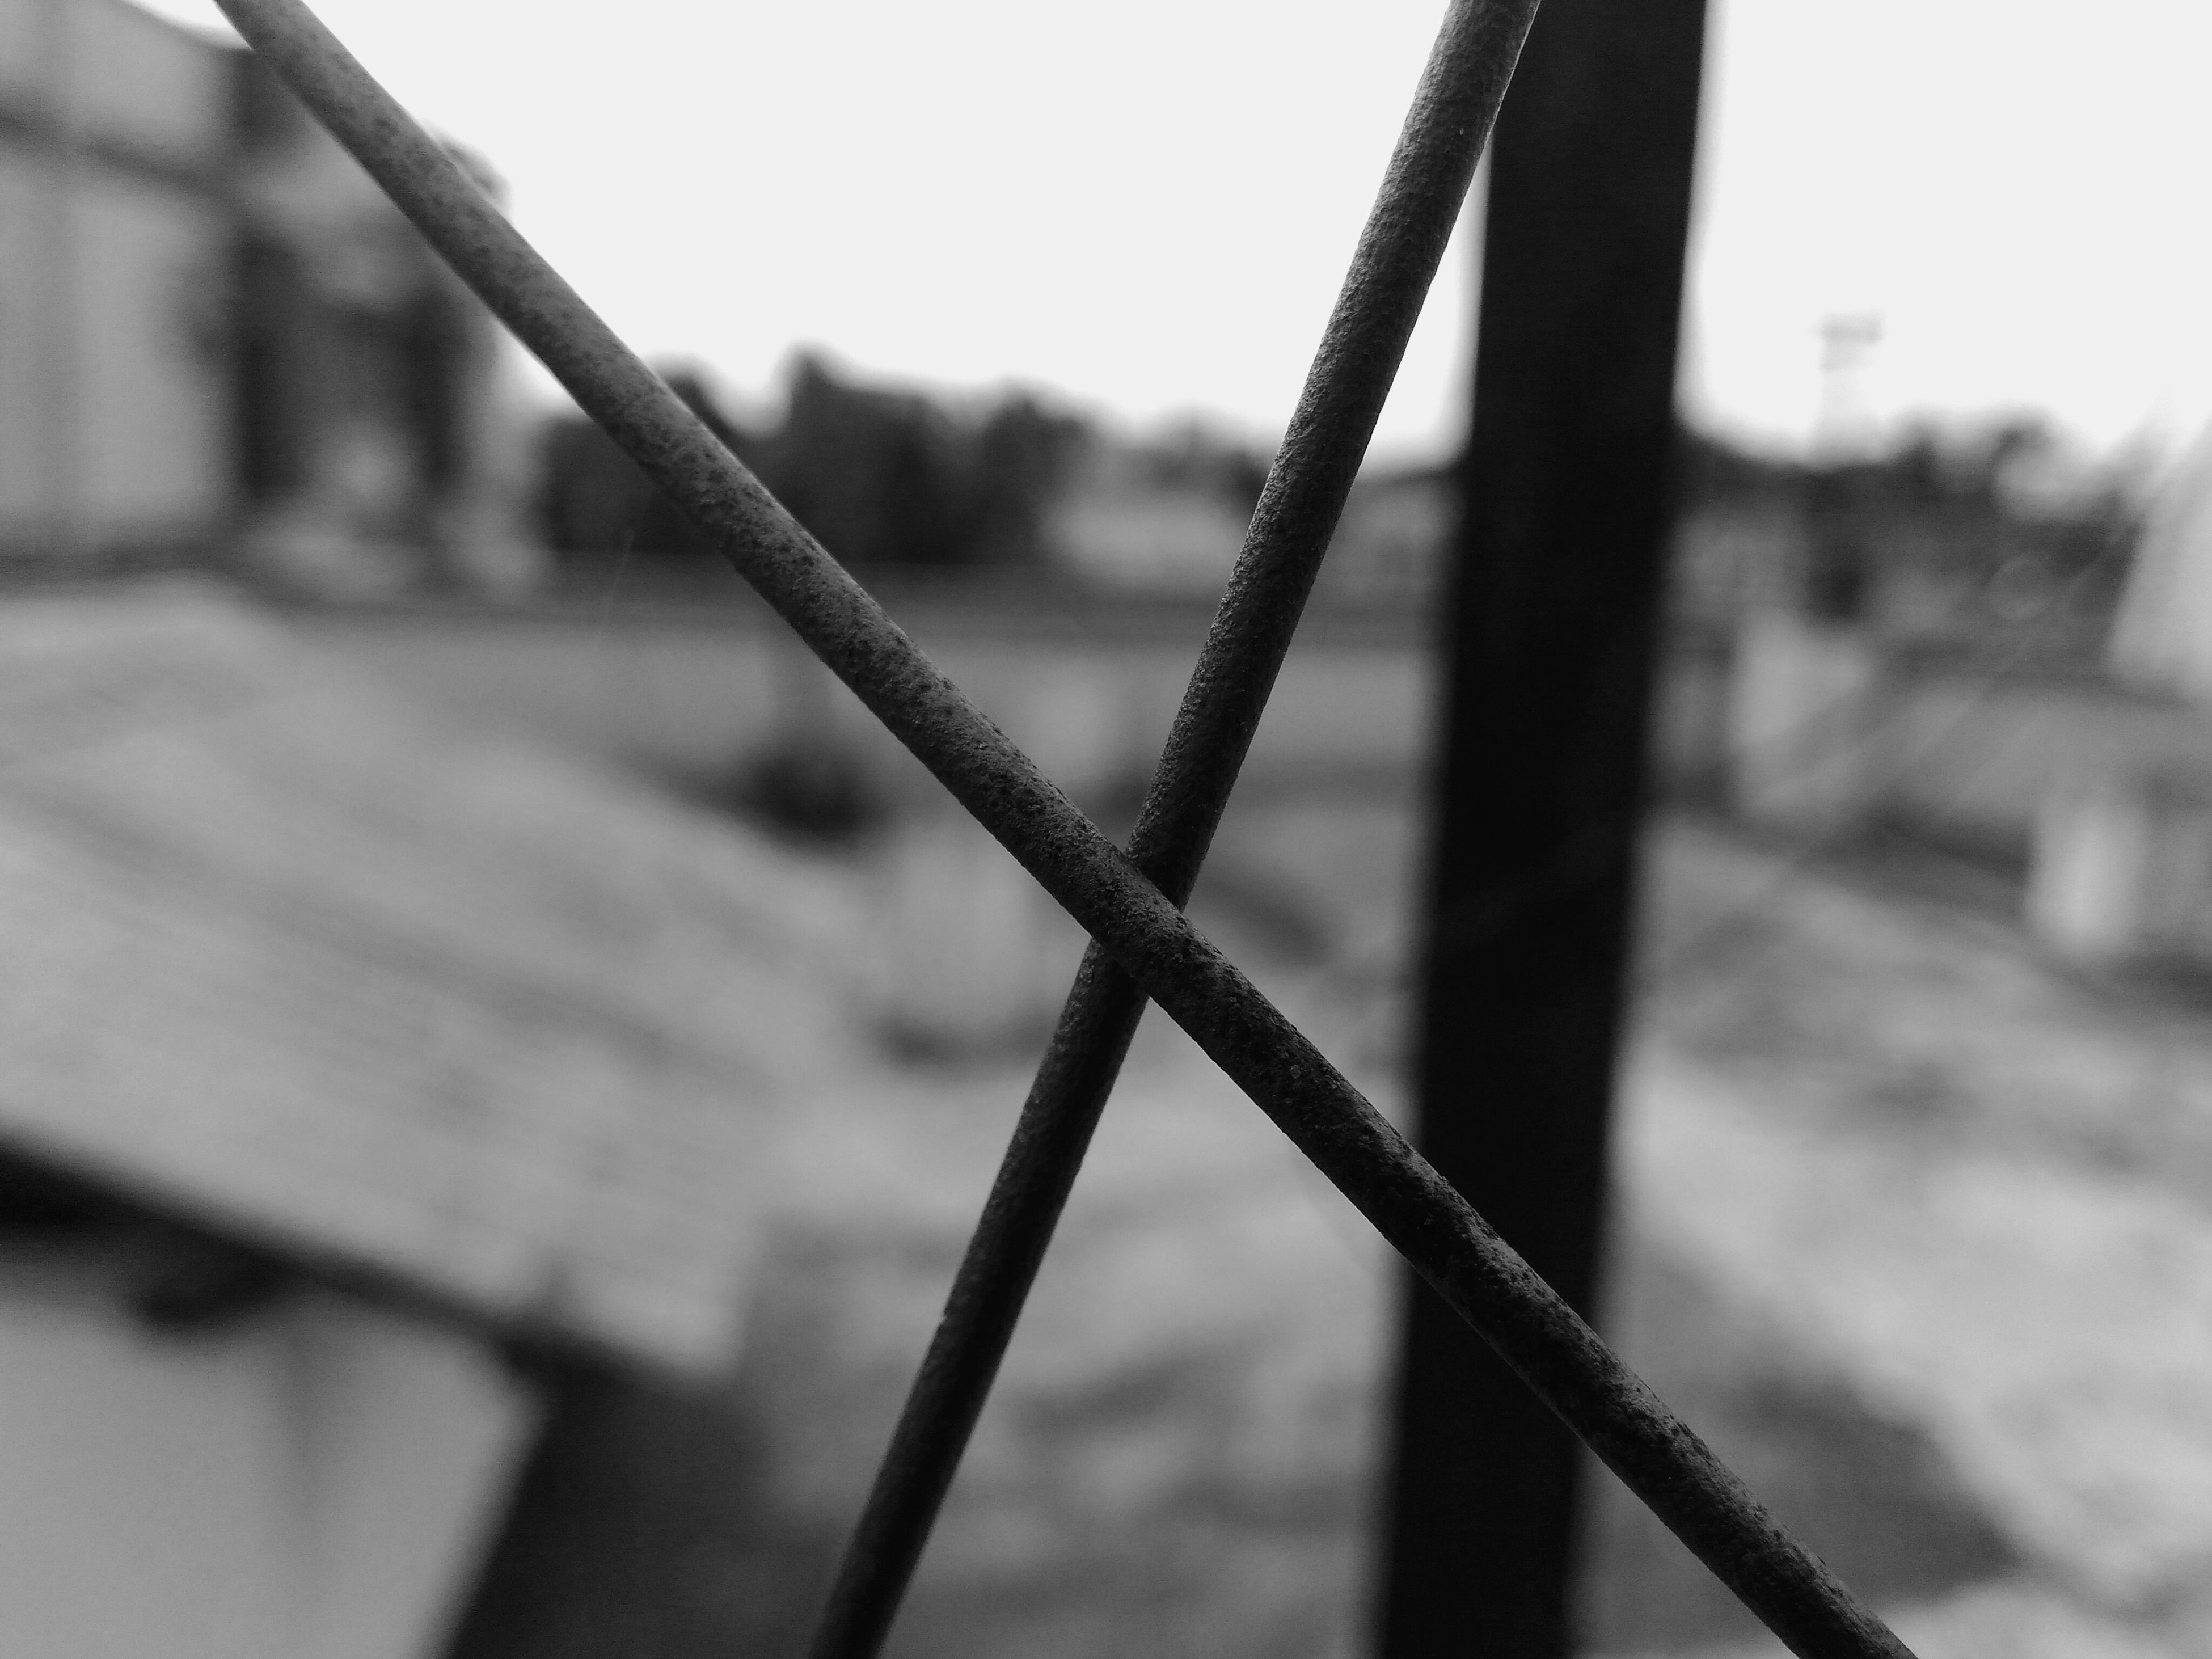 fence, focus on foreground, close-up, protection, metal, day, no people, outdoors